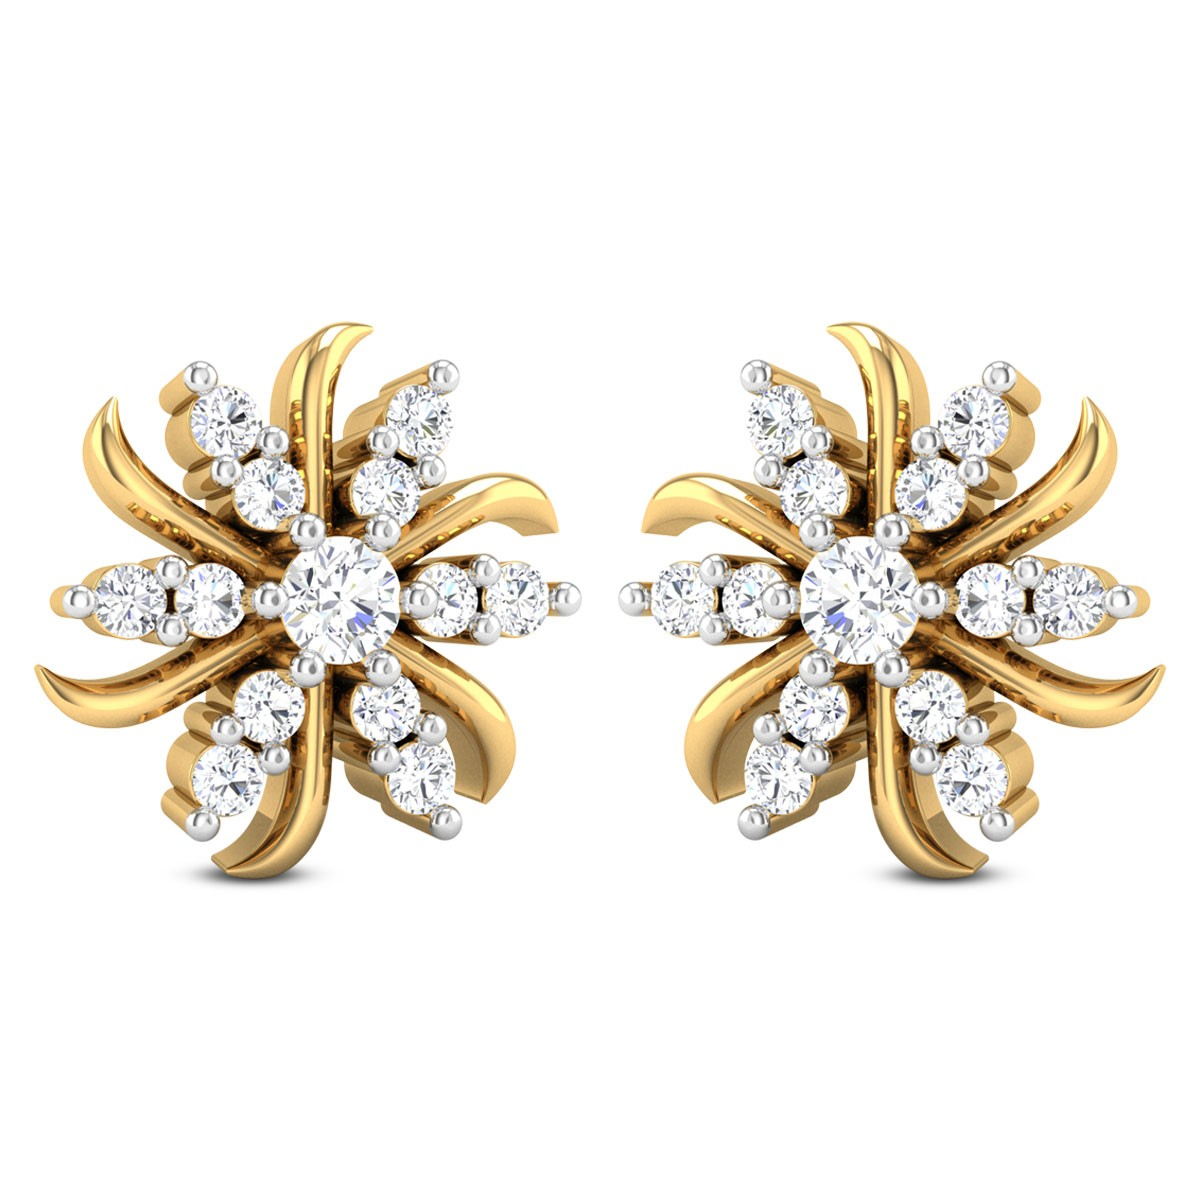 Advaya Diamond Stud Earrings